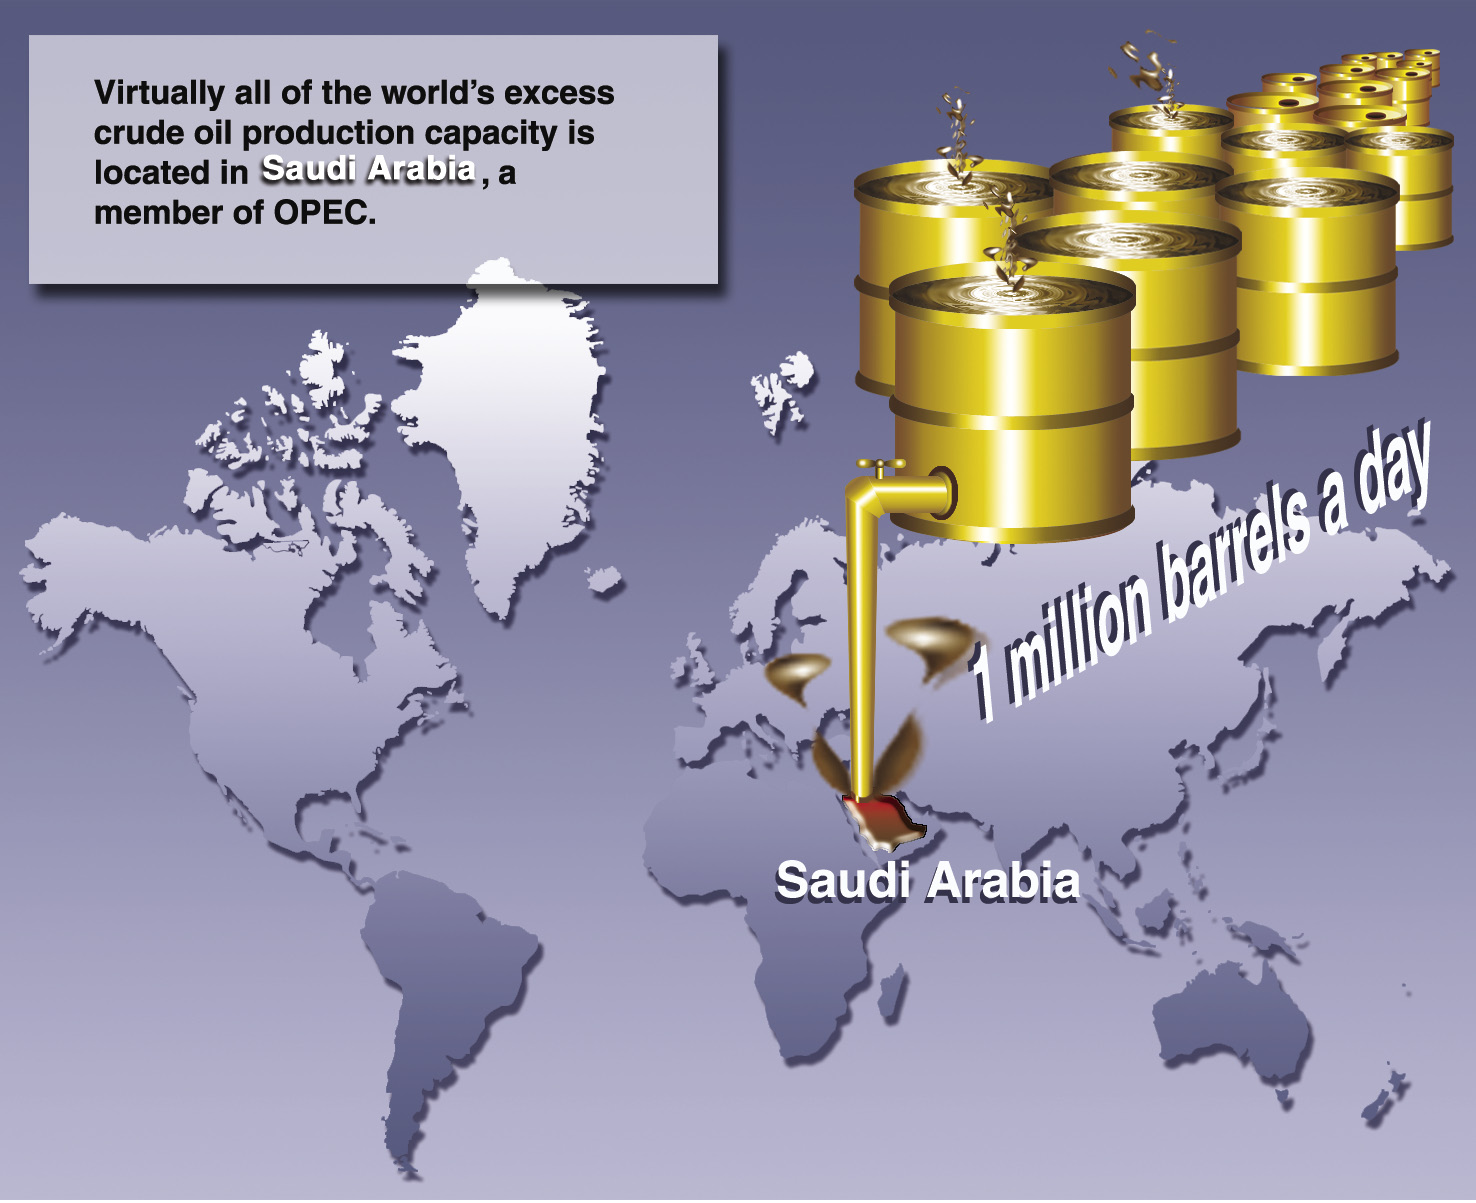 Figure 14: World Excess Crude Oil Production Capacity Source: GAO analysis of EIA data.